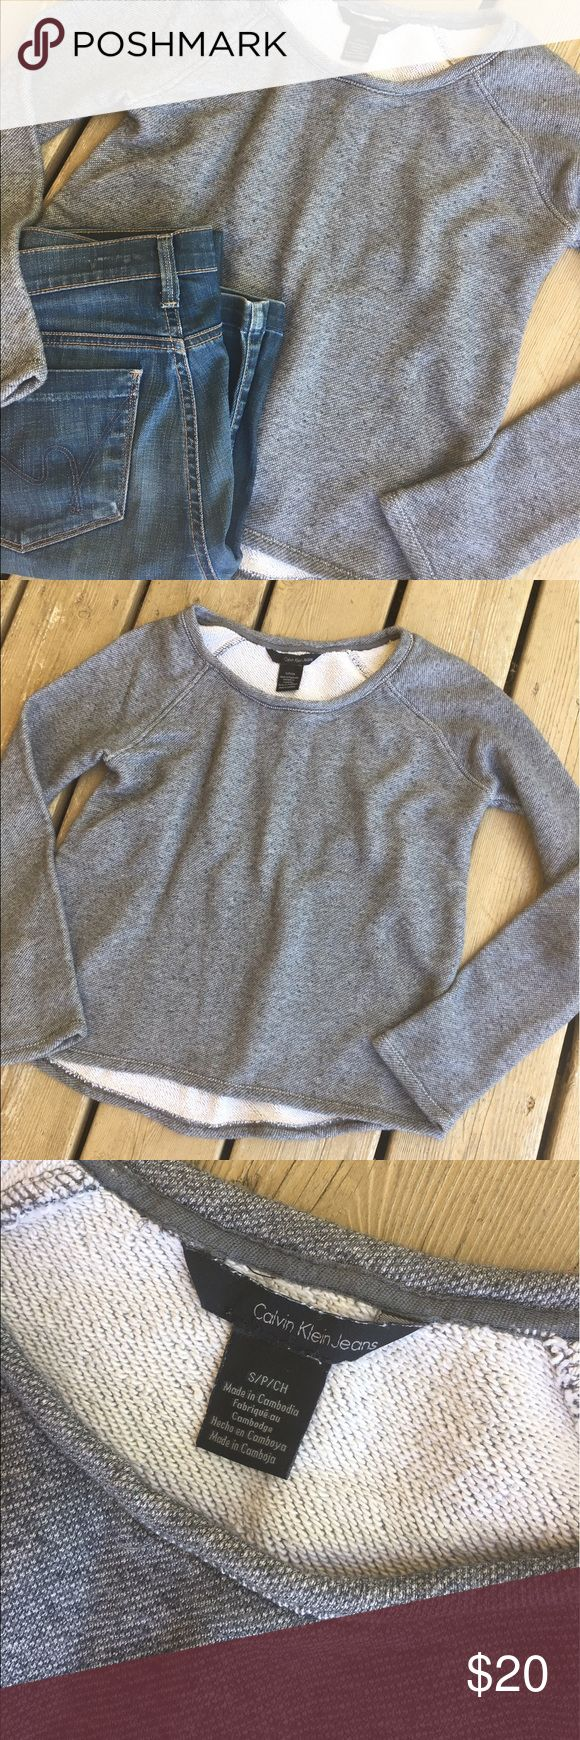 🙌sale🙌 Calvin Klein sweater Good condition Calvin Klein Jeans Tops Sweatshirts & Hoodies